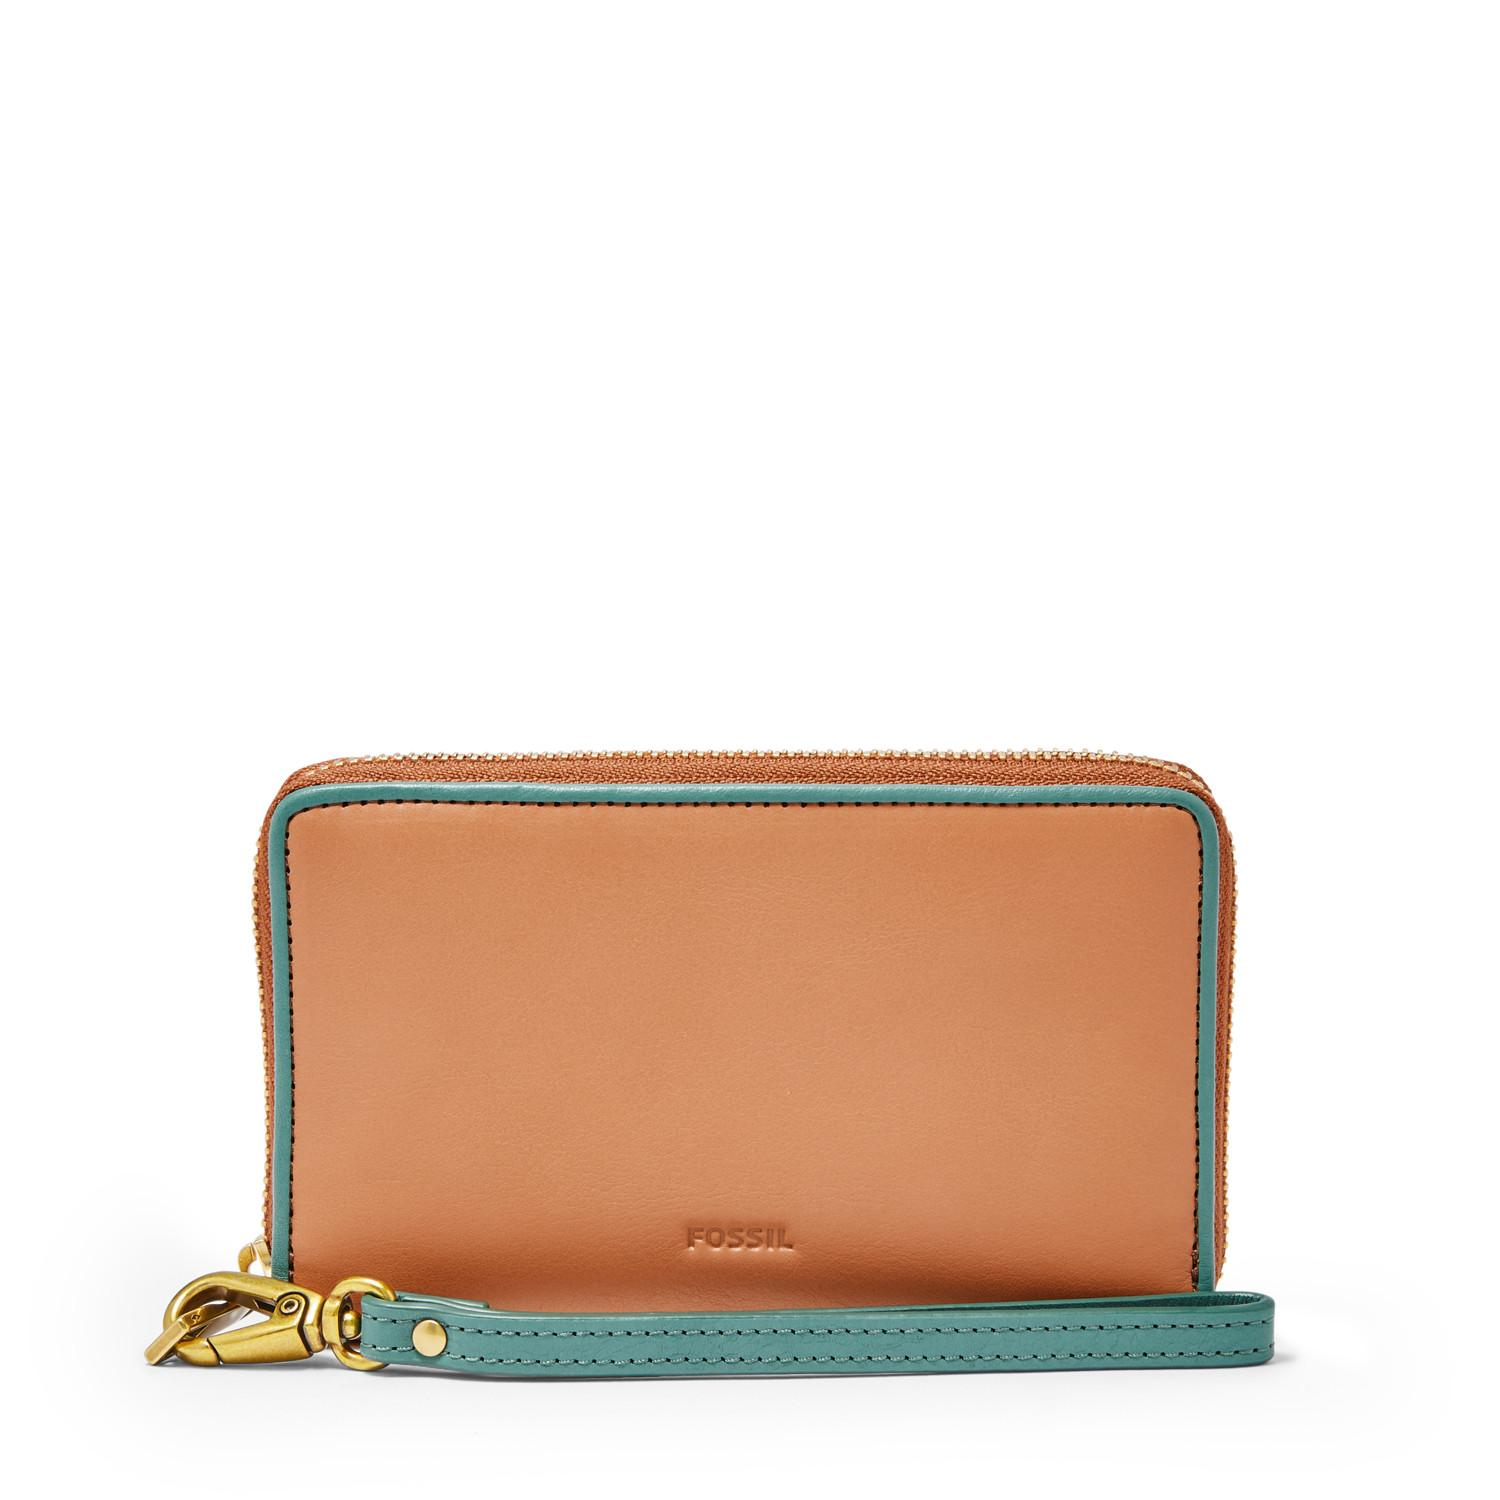 Fossil - Emma Leather Smarthpone - Brown - Dompet HP Wanita - SL7472-231 - SL